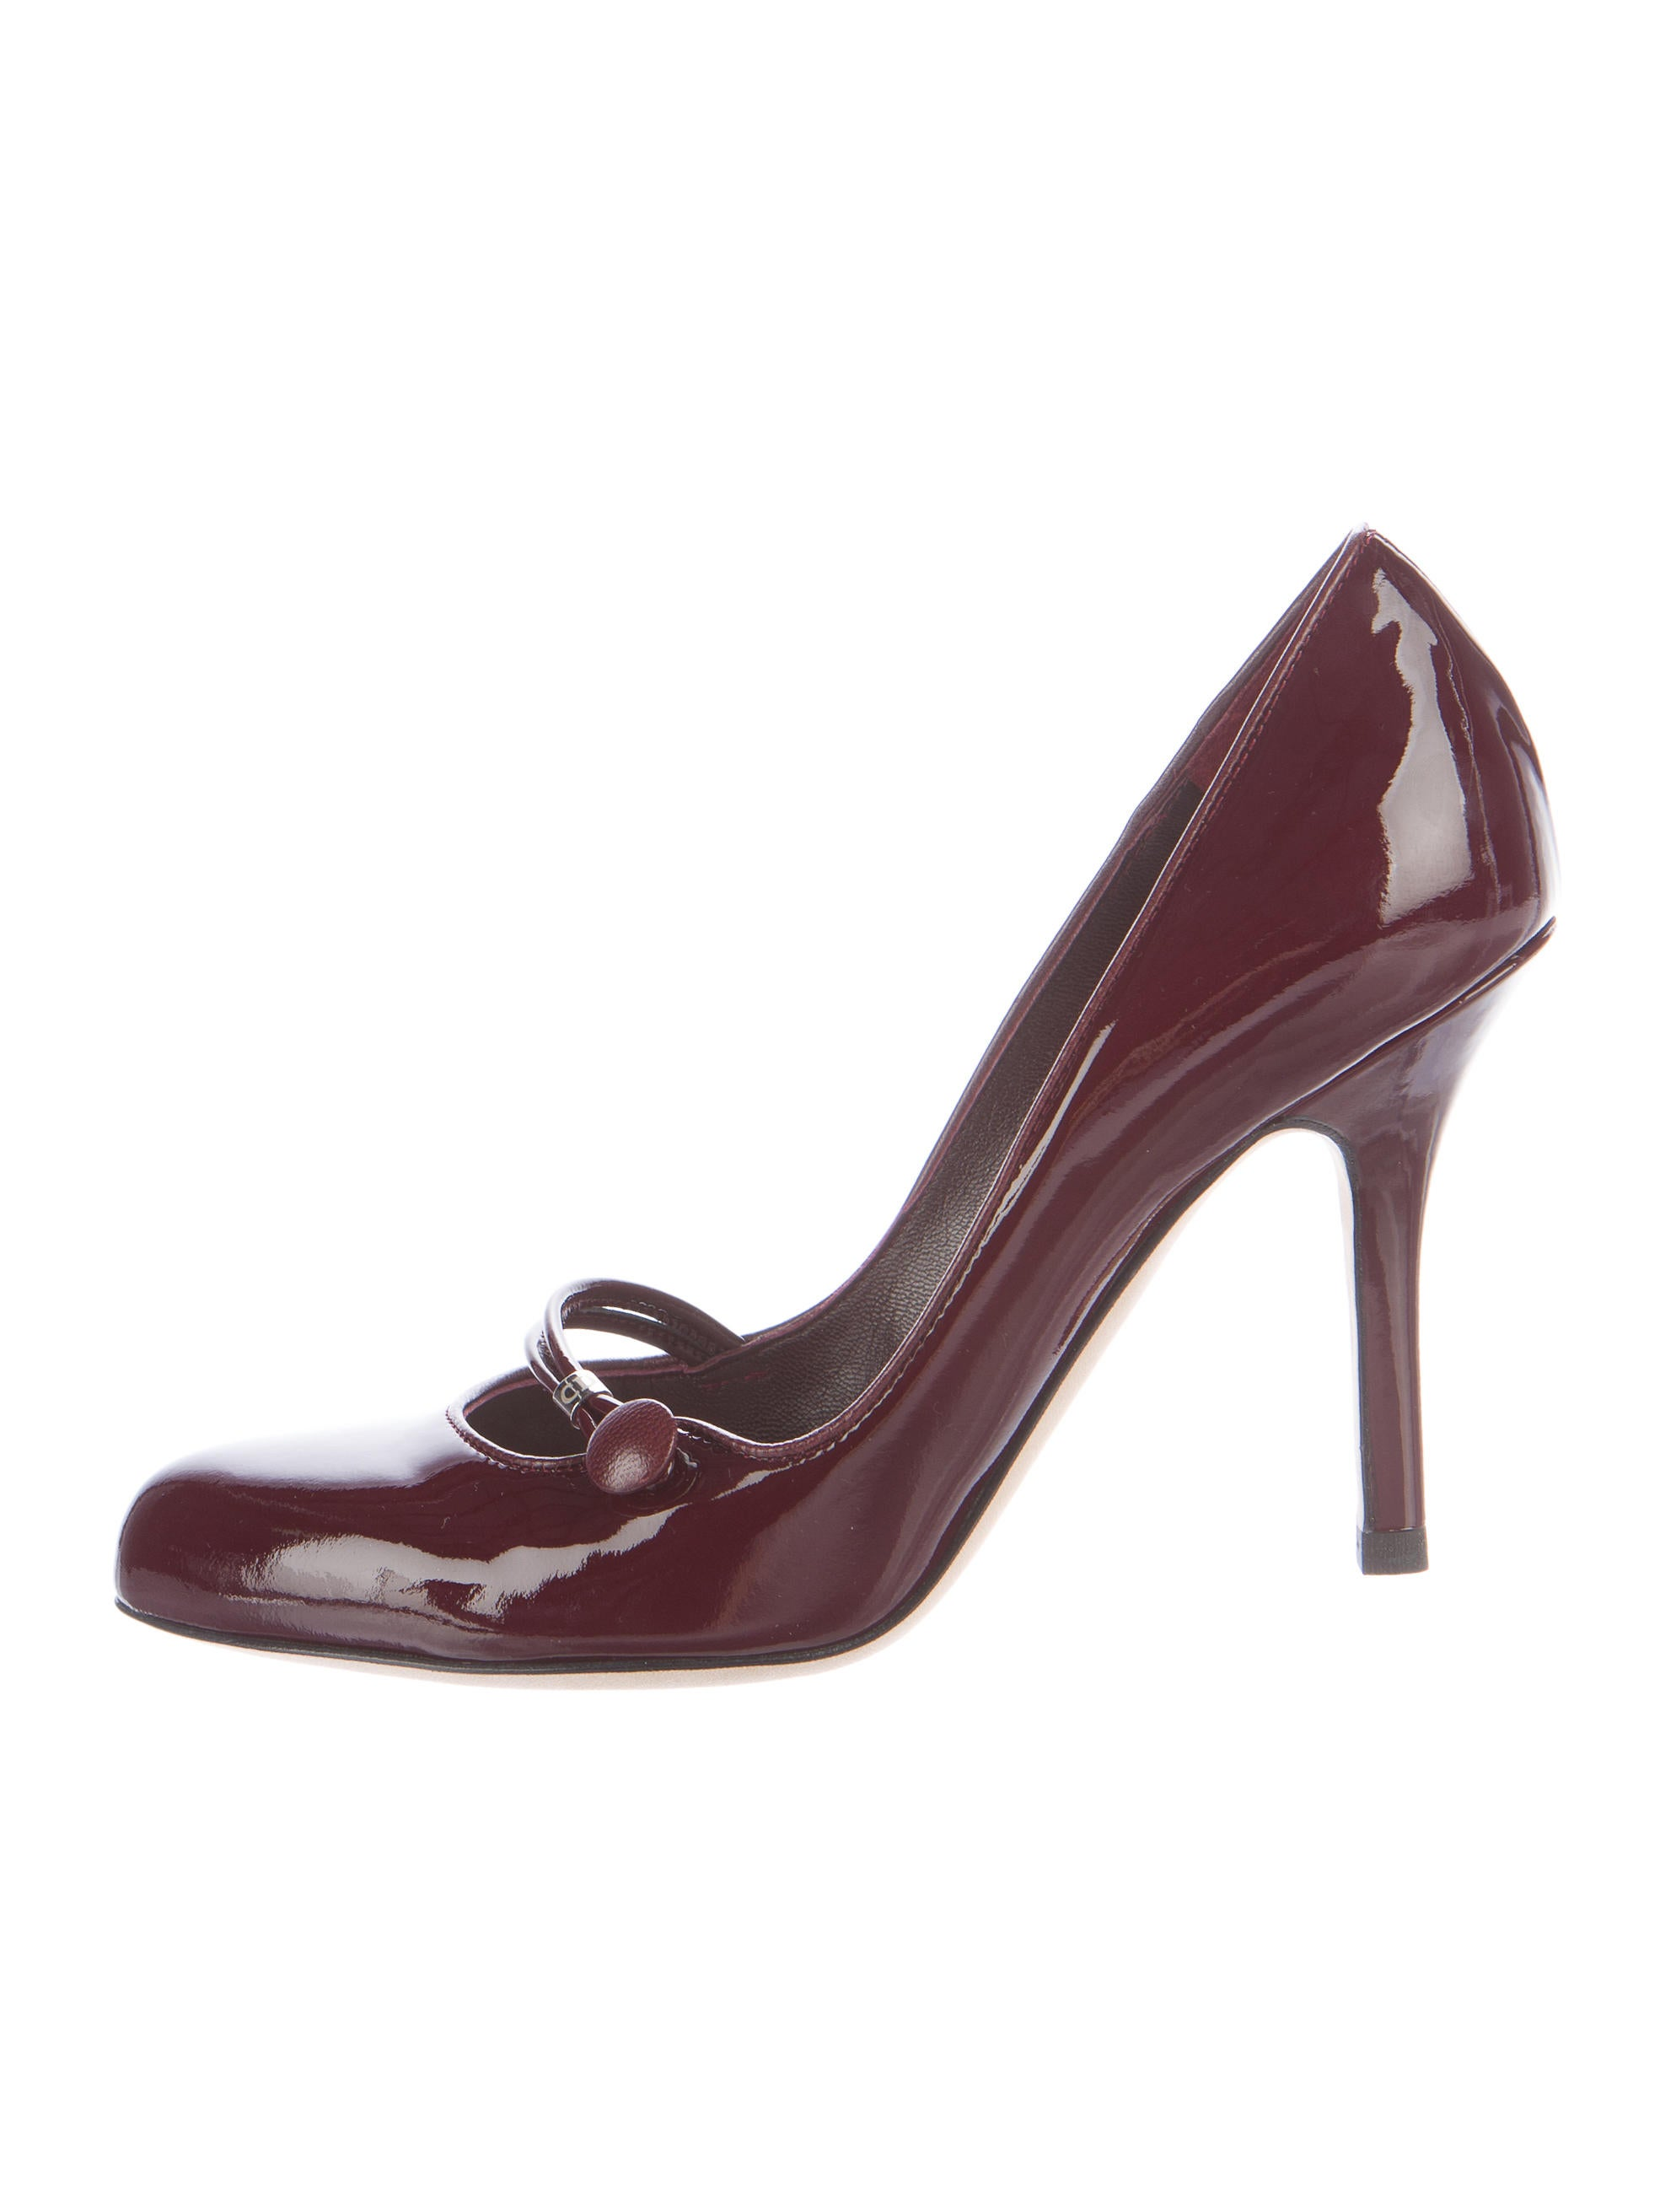 buy cheap exclusive Christian Dior Patent Mary Jane Pumps cheap price outlet sale LMxRJubRa